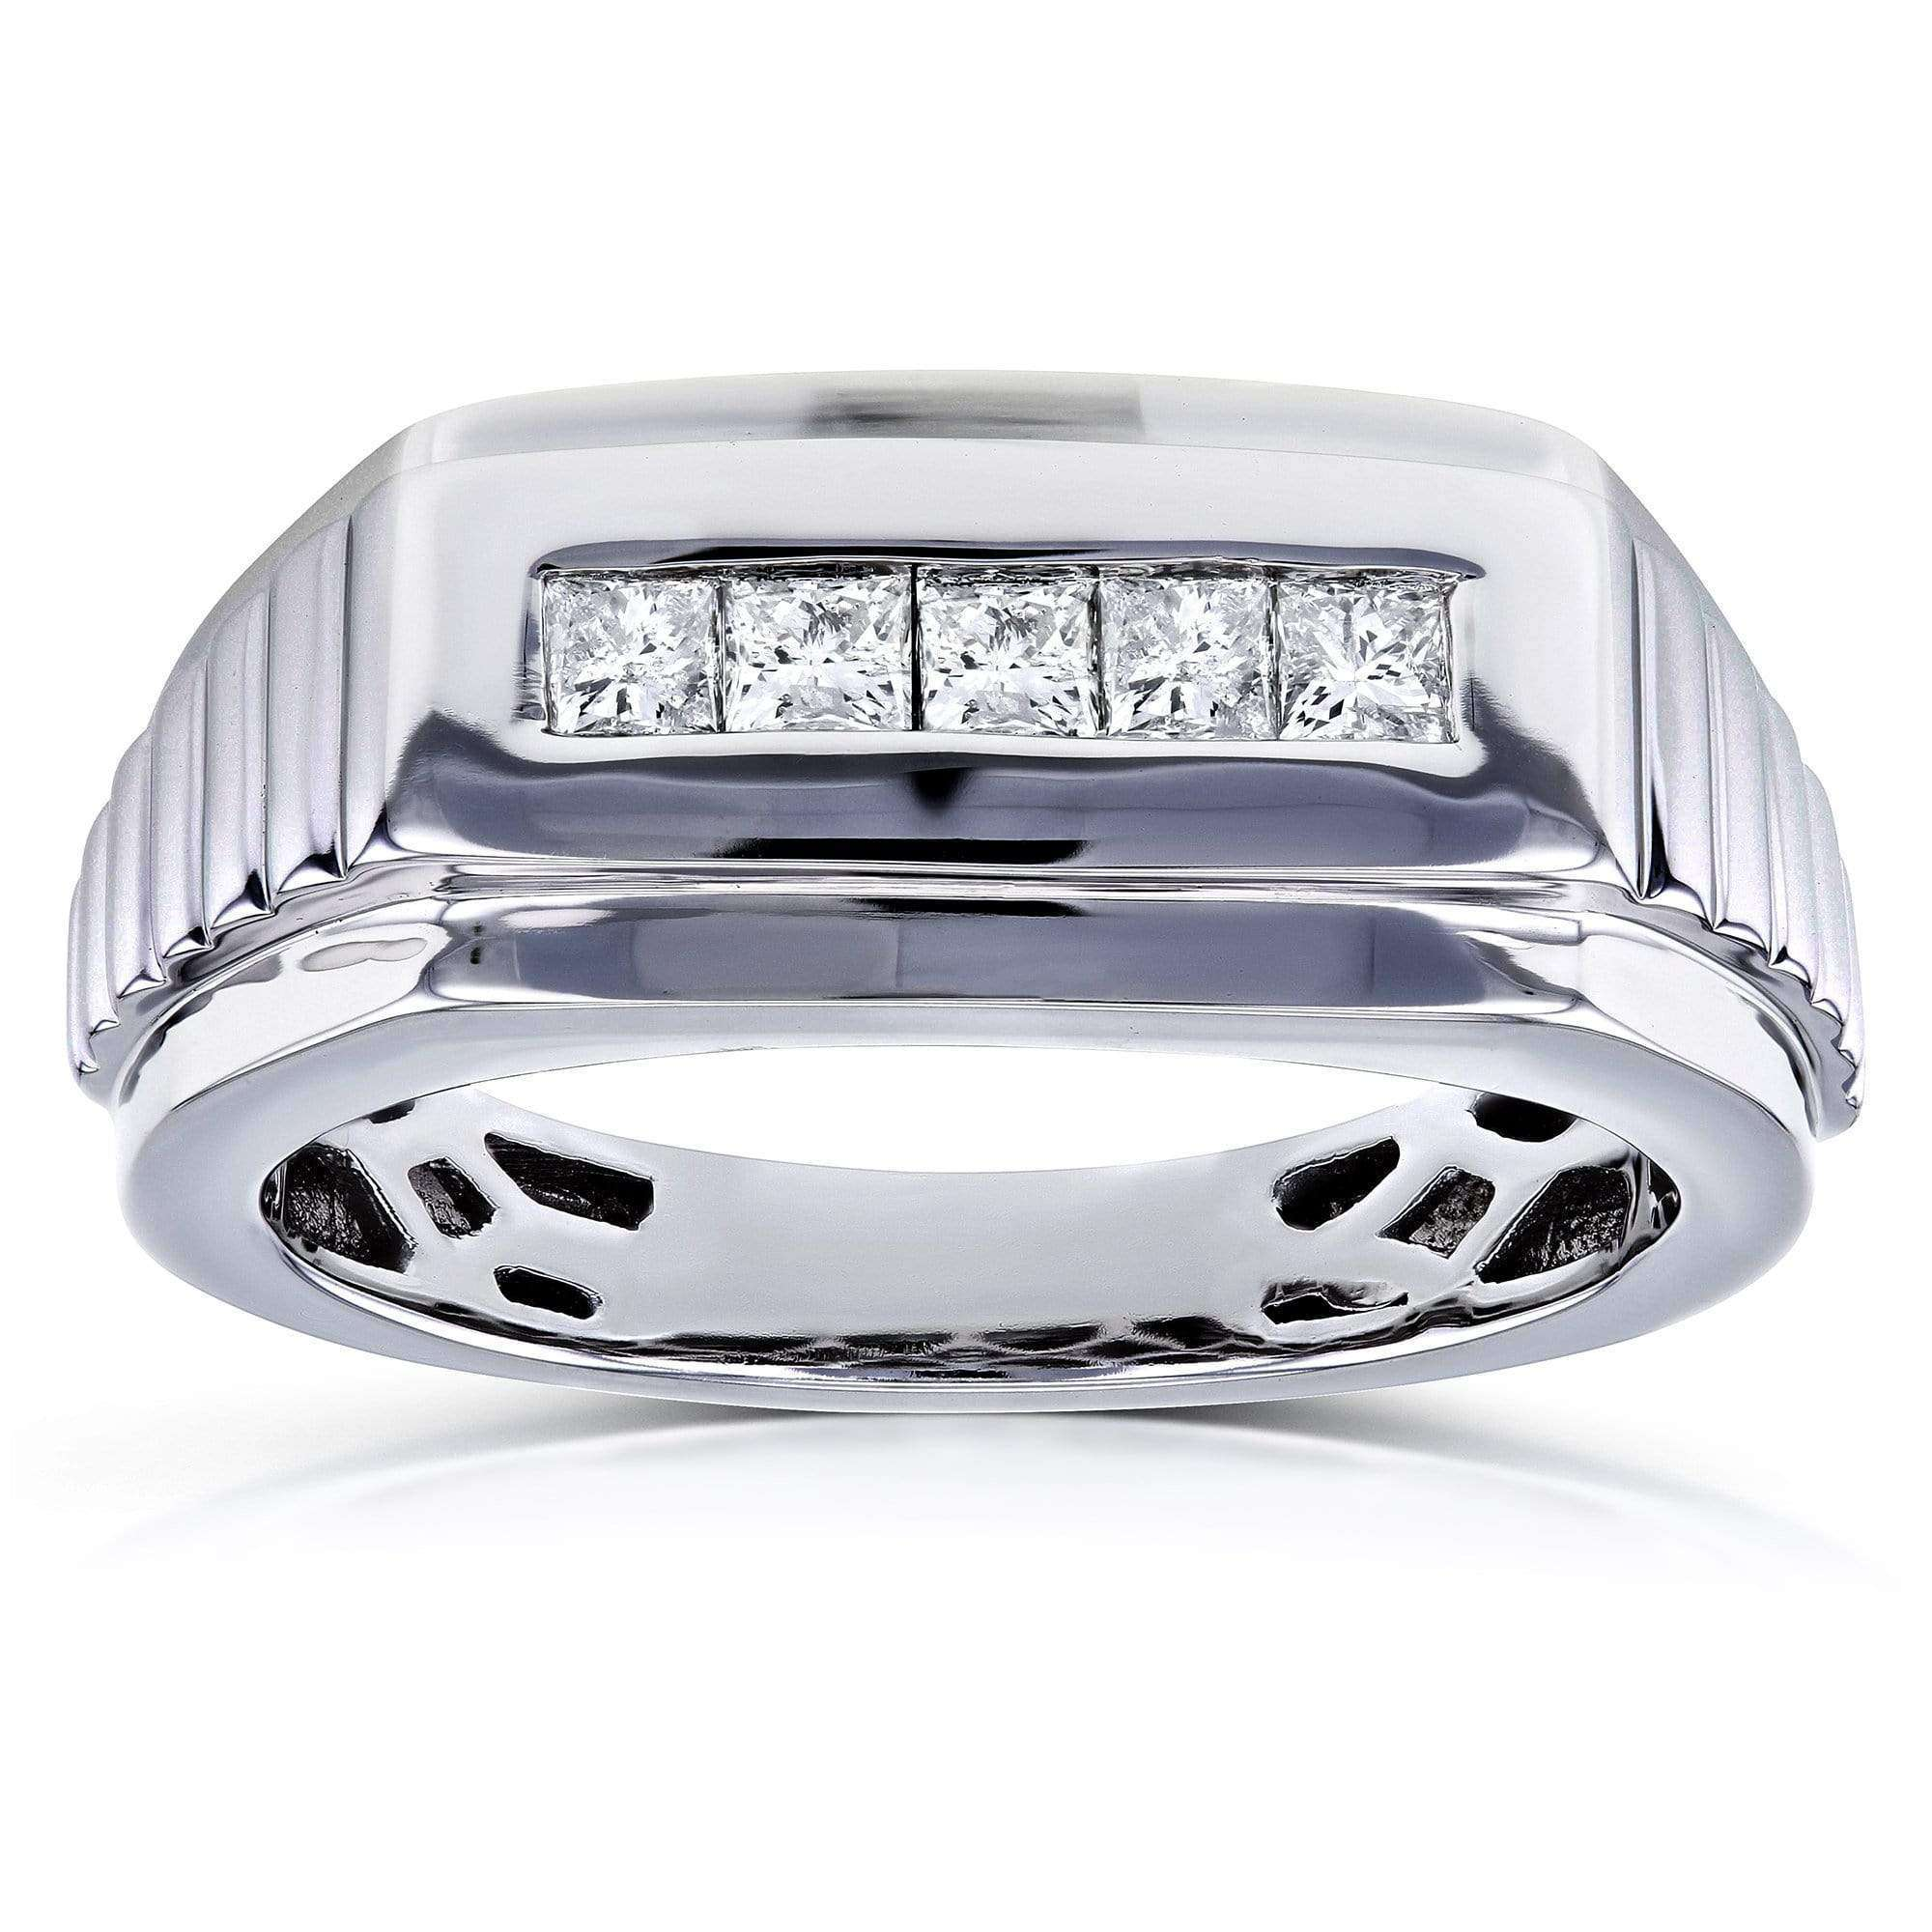 Cheap Mens Ring Channel Square Diamonds 1/2 Carat (ctw) in 10k White Gold - 9